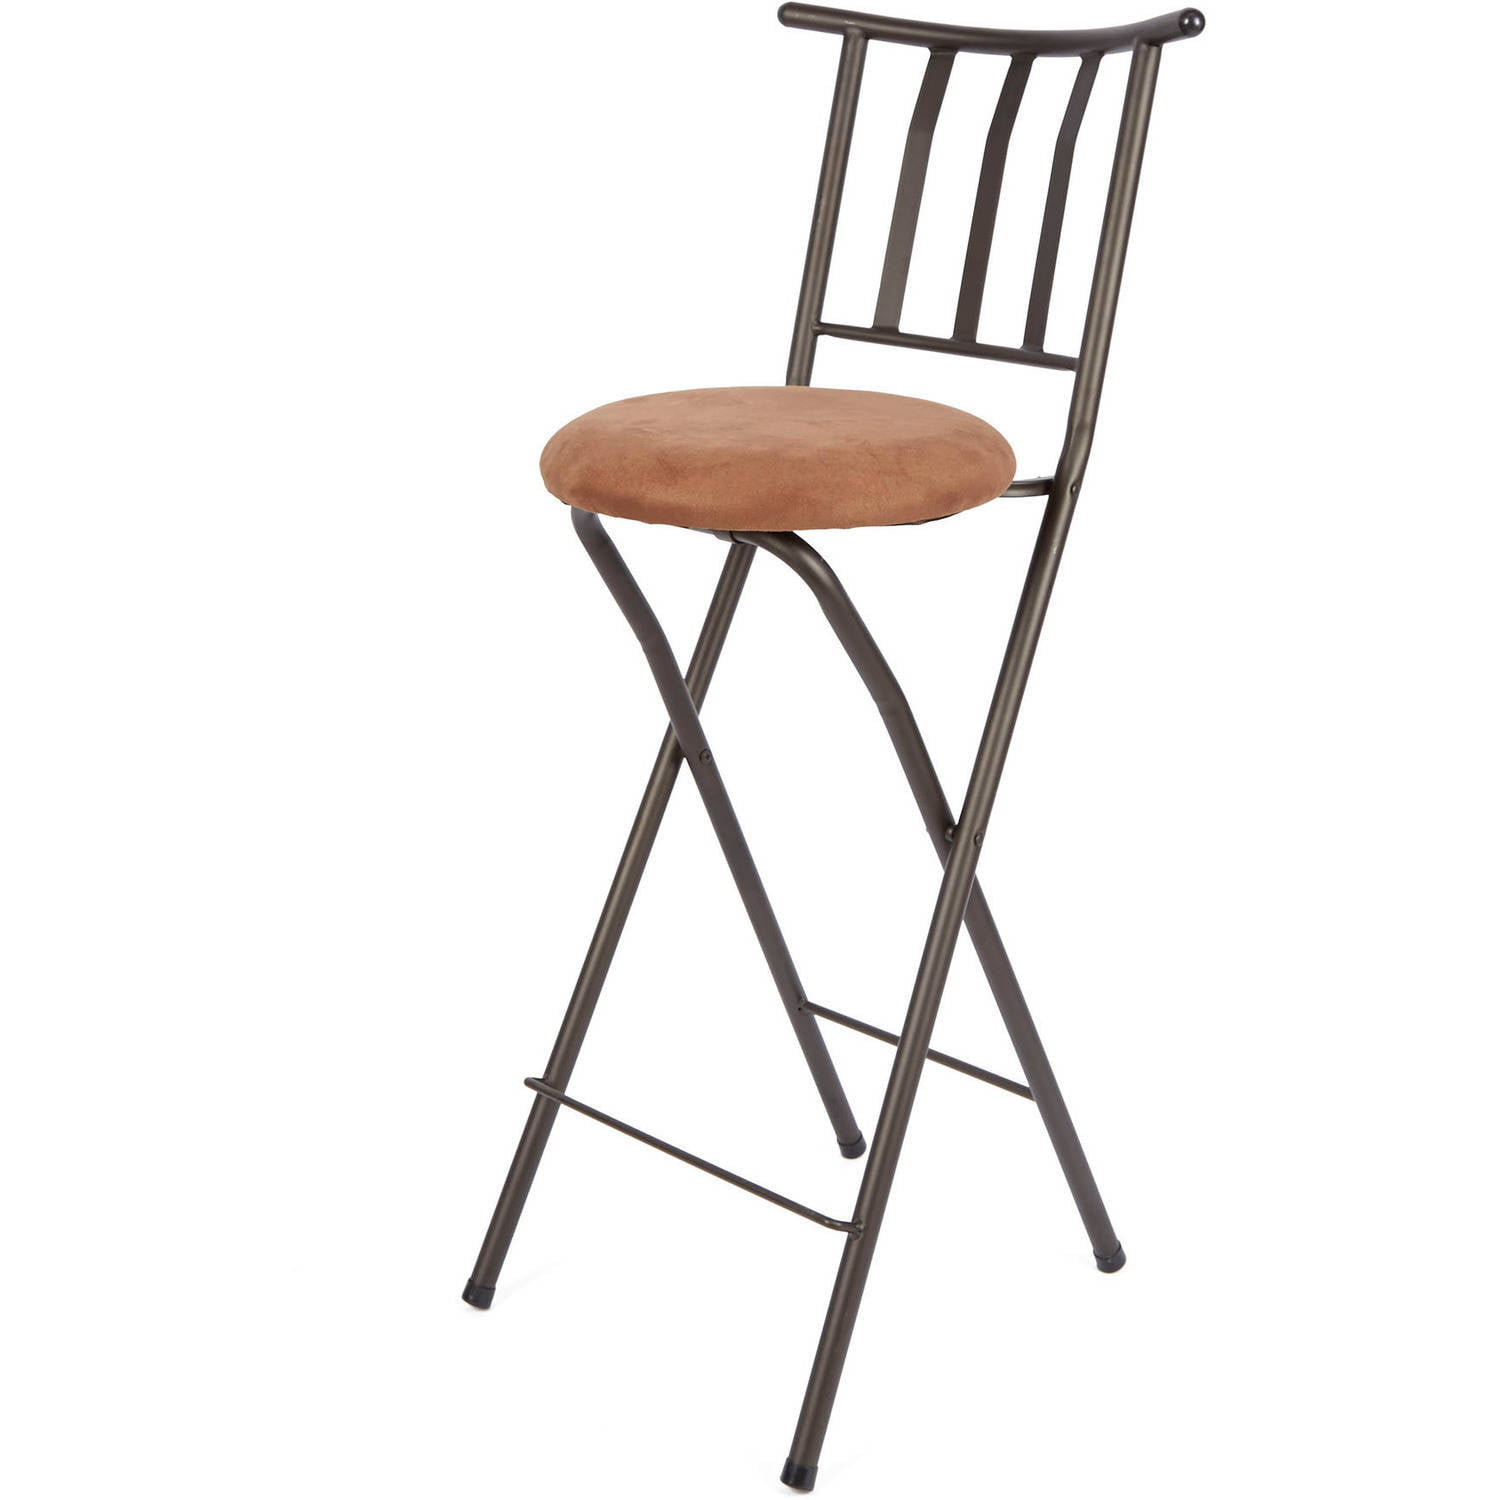 Mainstays Slat Back Folding 30  Bronze Barstool Multiple Colors - Walmart.com  sc 1 st  Walmart : 24 bar stools with backs - islam-shia.org